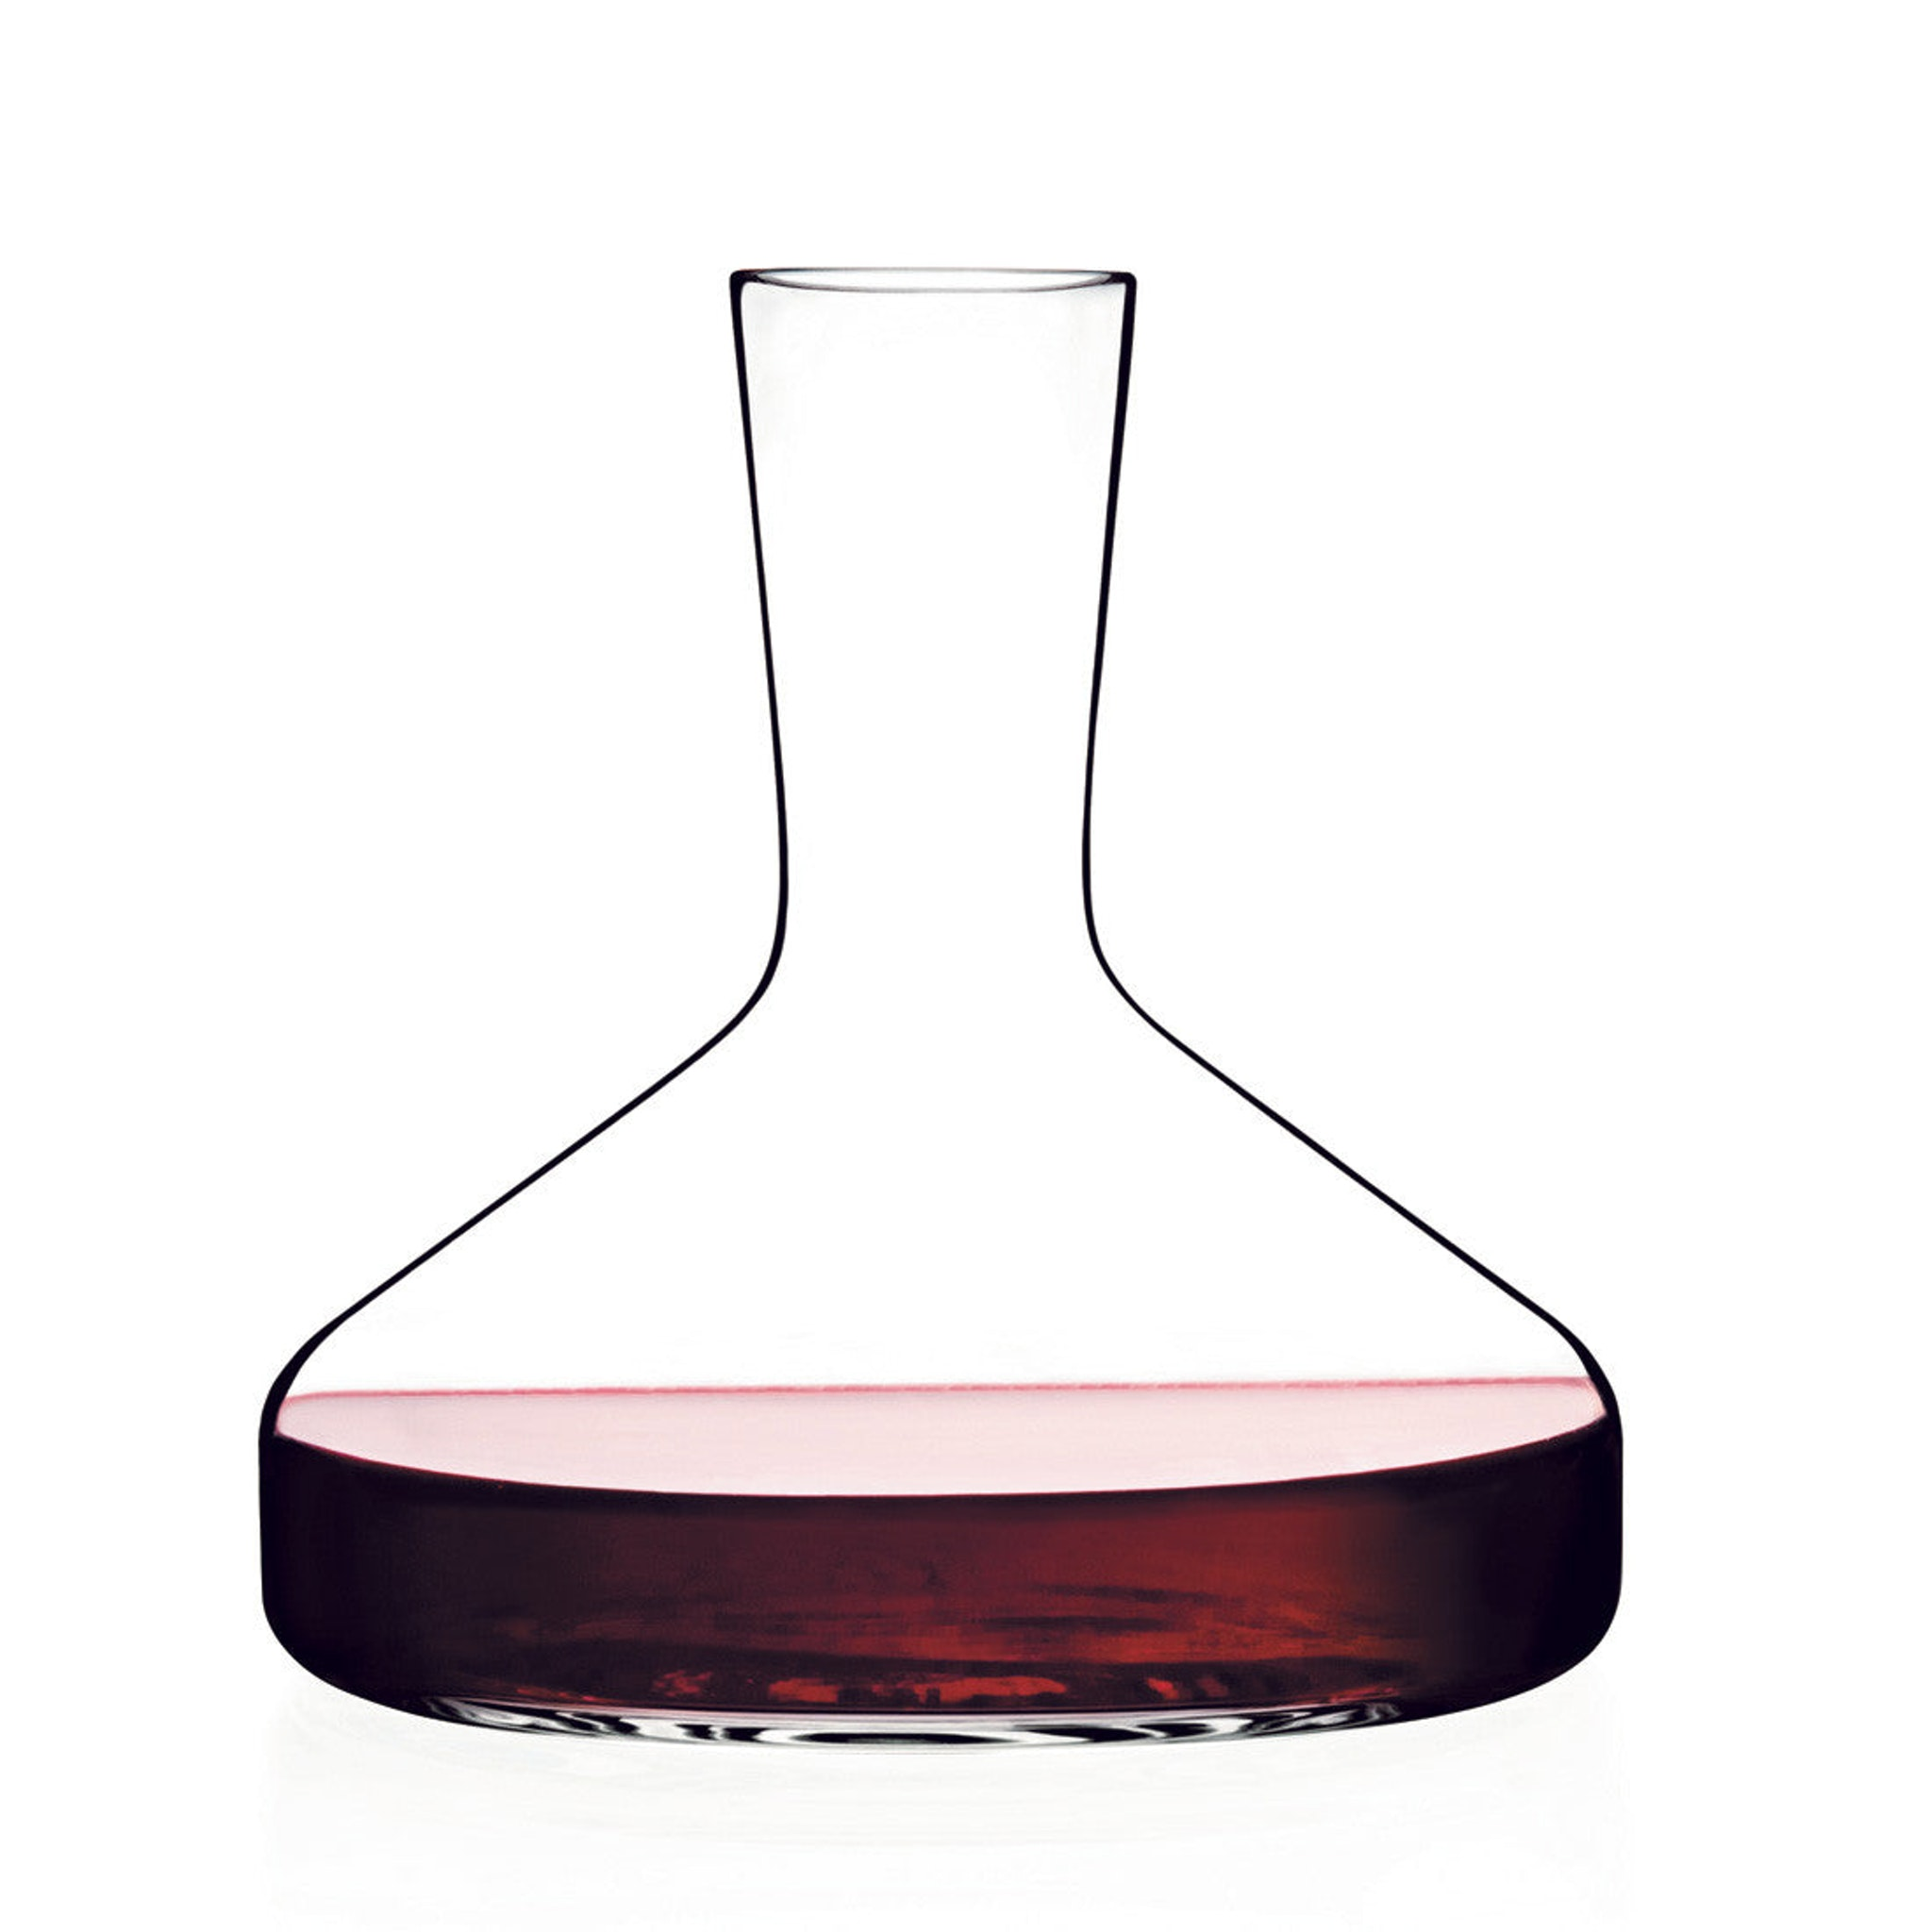 Decanter by Antonio Citterio for Iittala